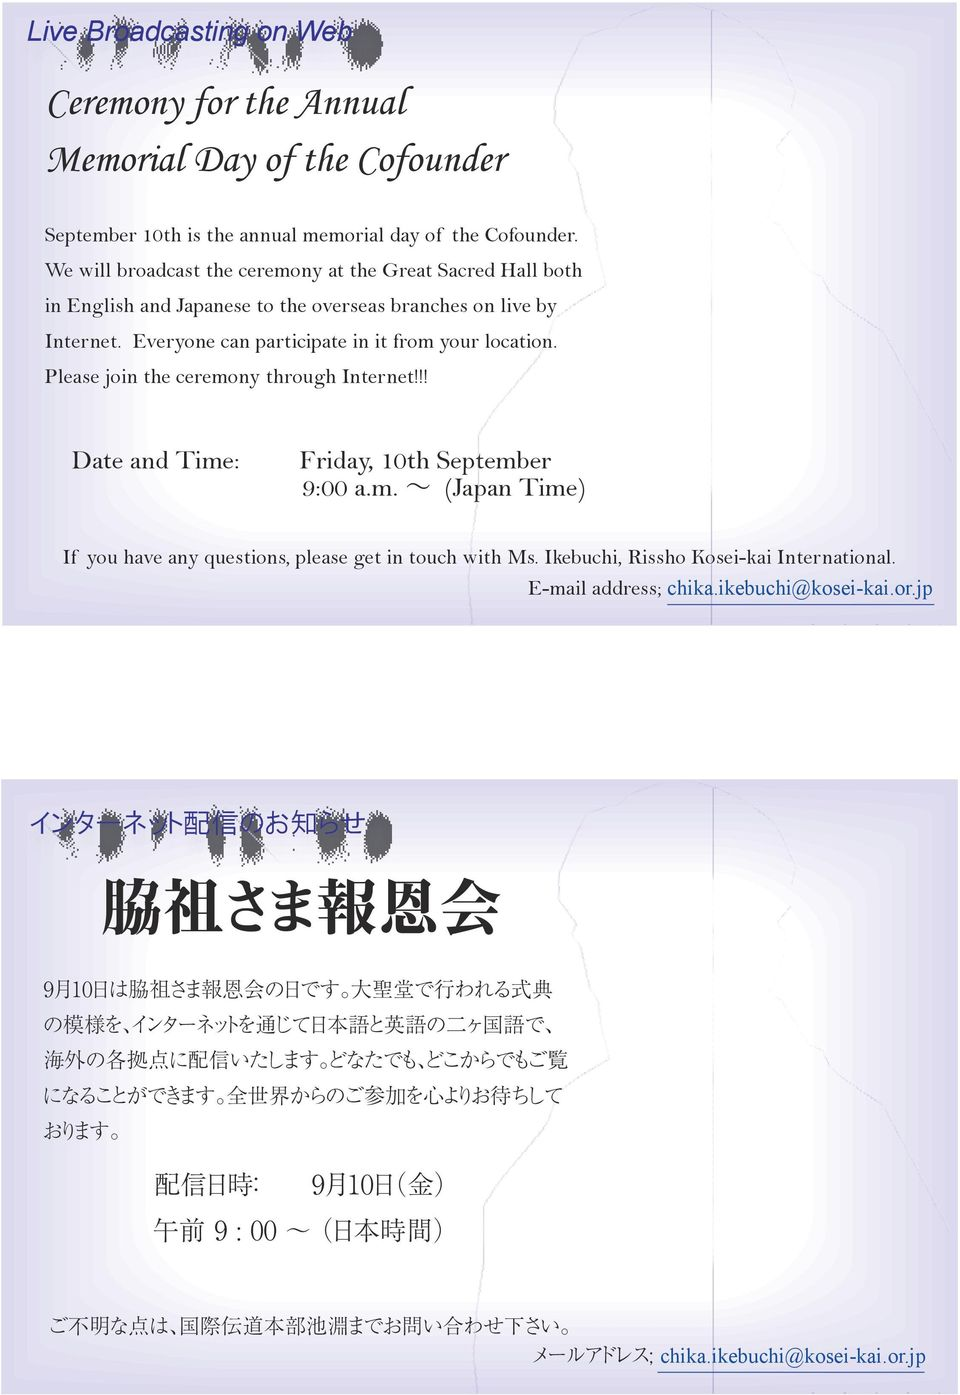 Everyone can participate in it from your location. Please join the ceremony through Internet!!! Date and Time: Friday, 10th September 9:00 a.m. ~ (Japan Time) If you have any questions, please get in touch with Ms.